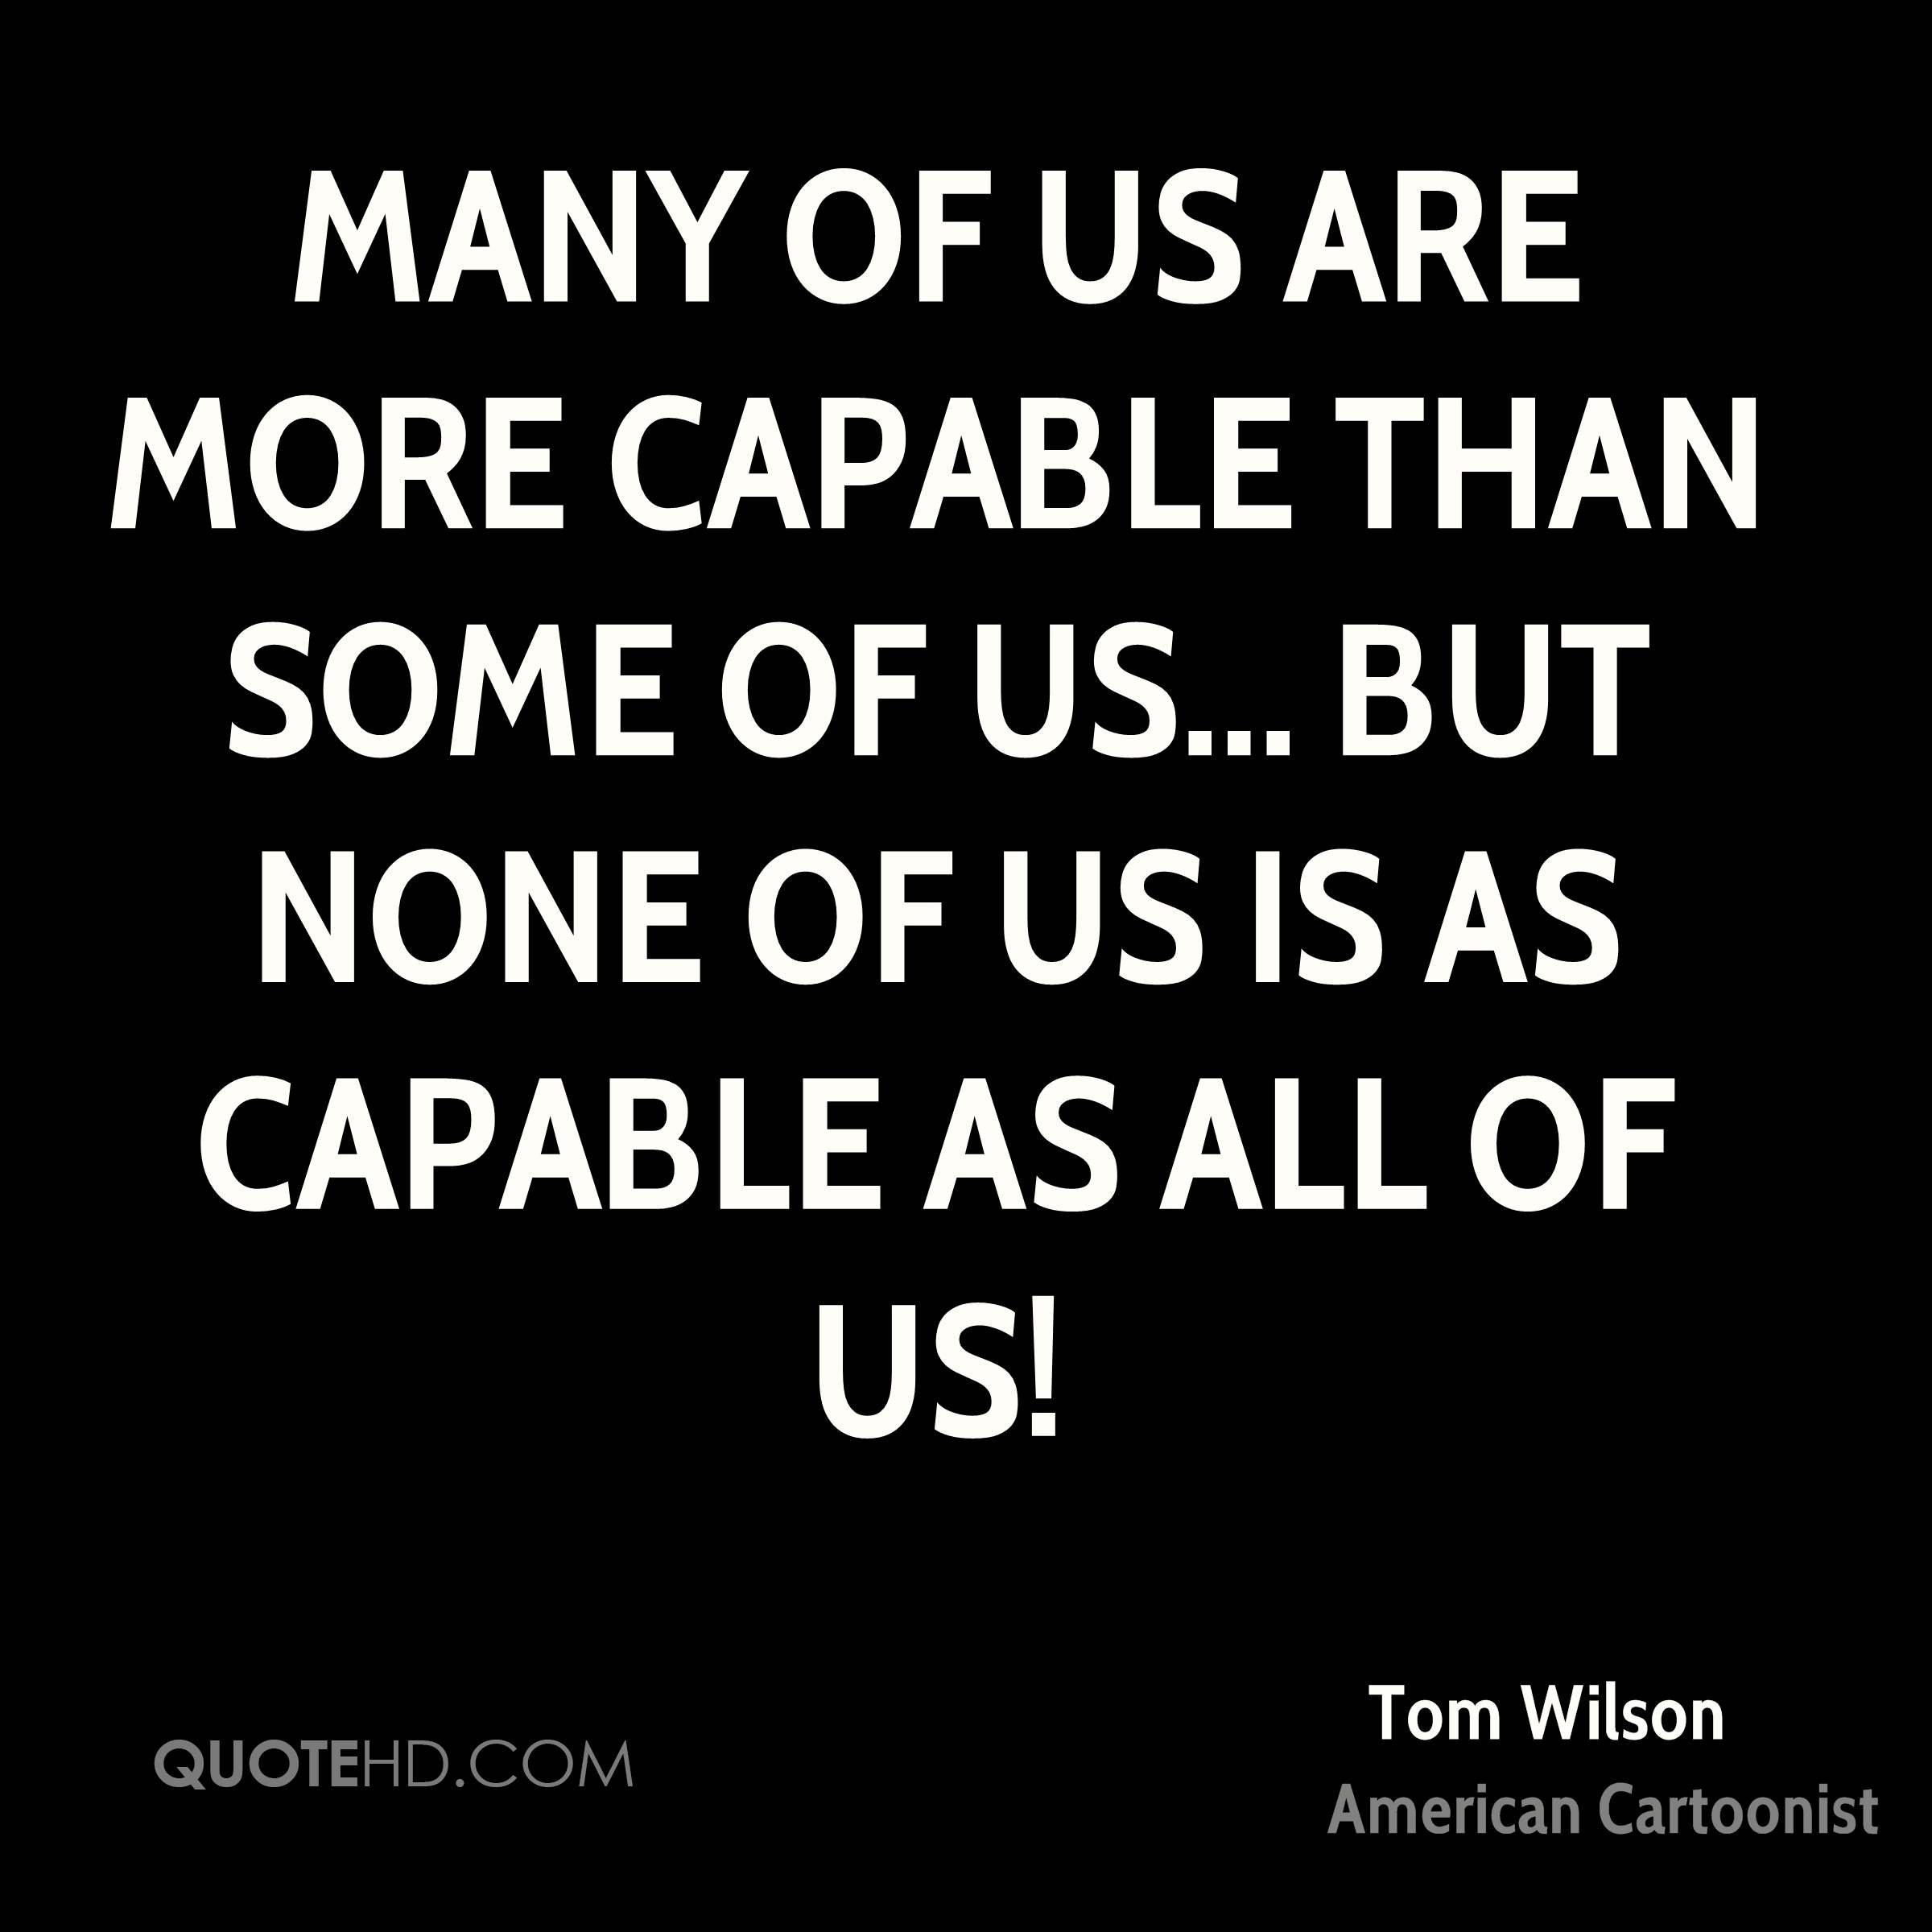 Many of us are more capable than some of us... but none of us is as capable as all of us!